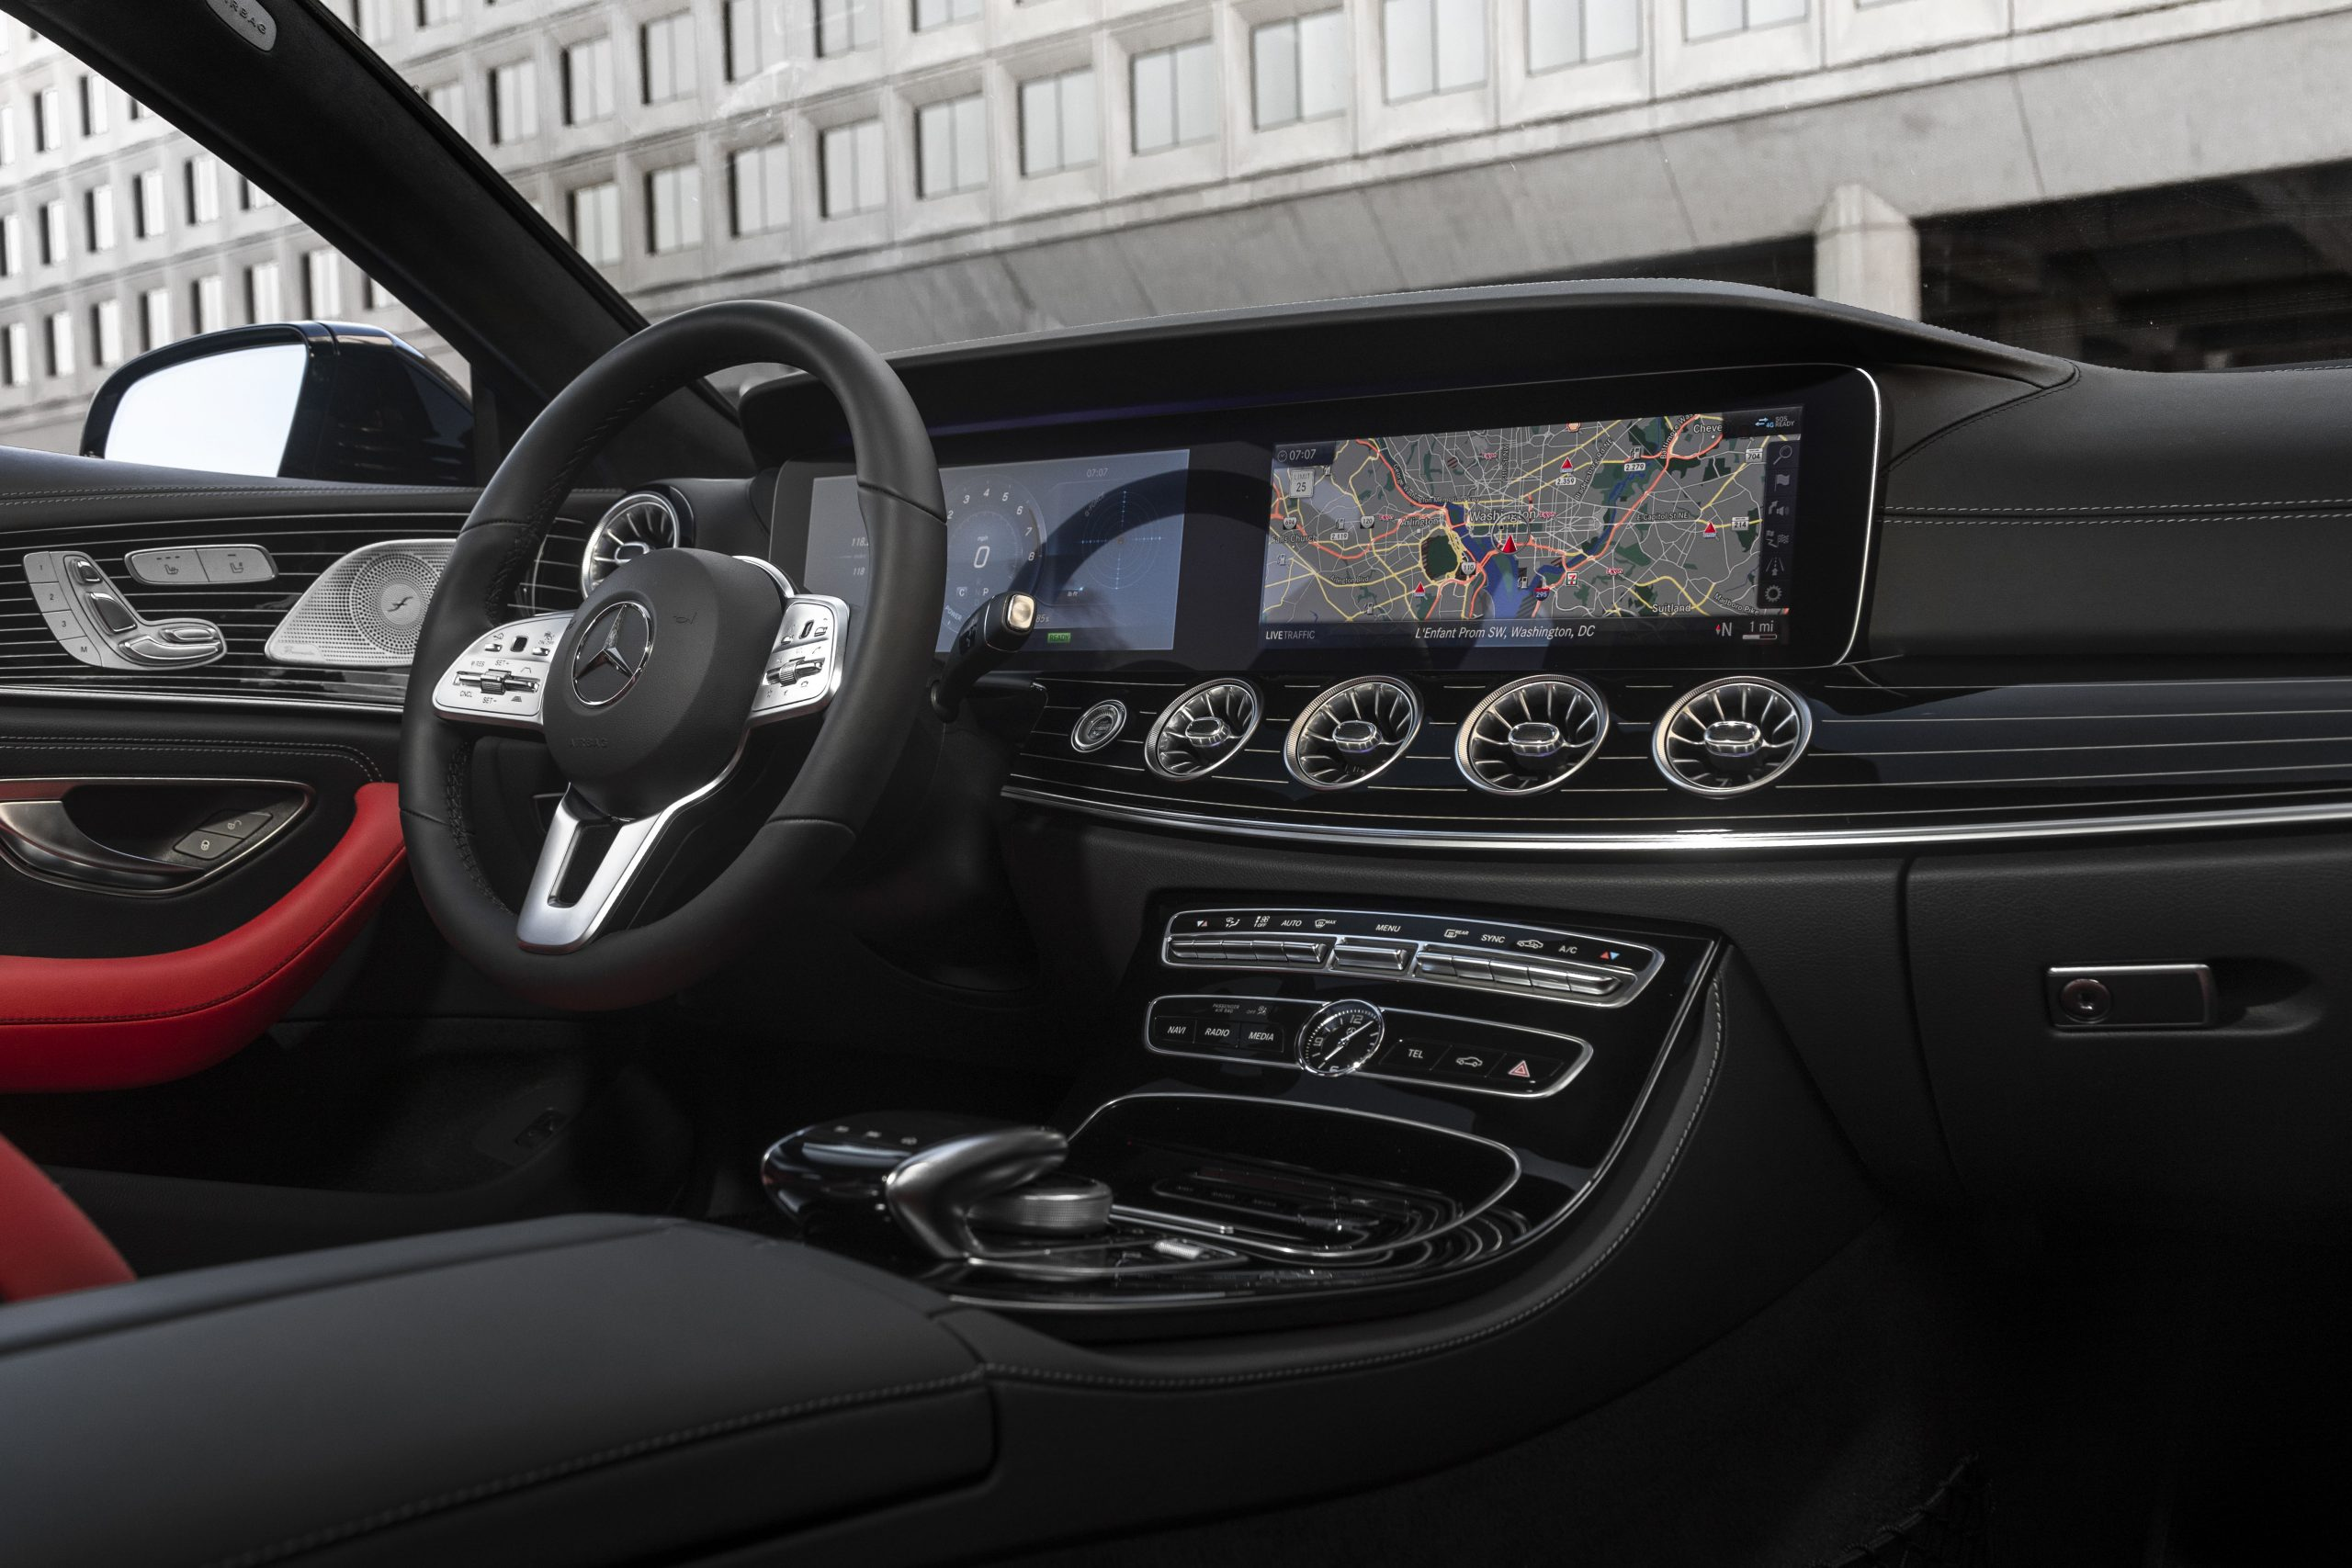 2022 Mercedes-Benz CLS 450 interior dash